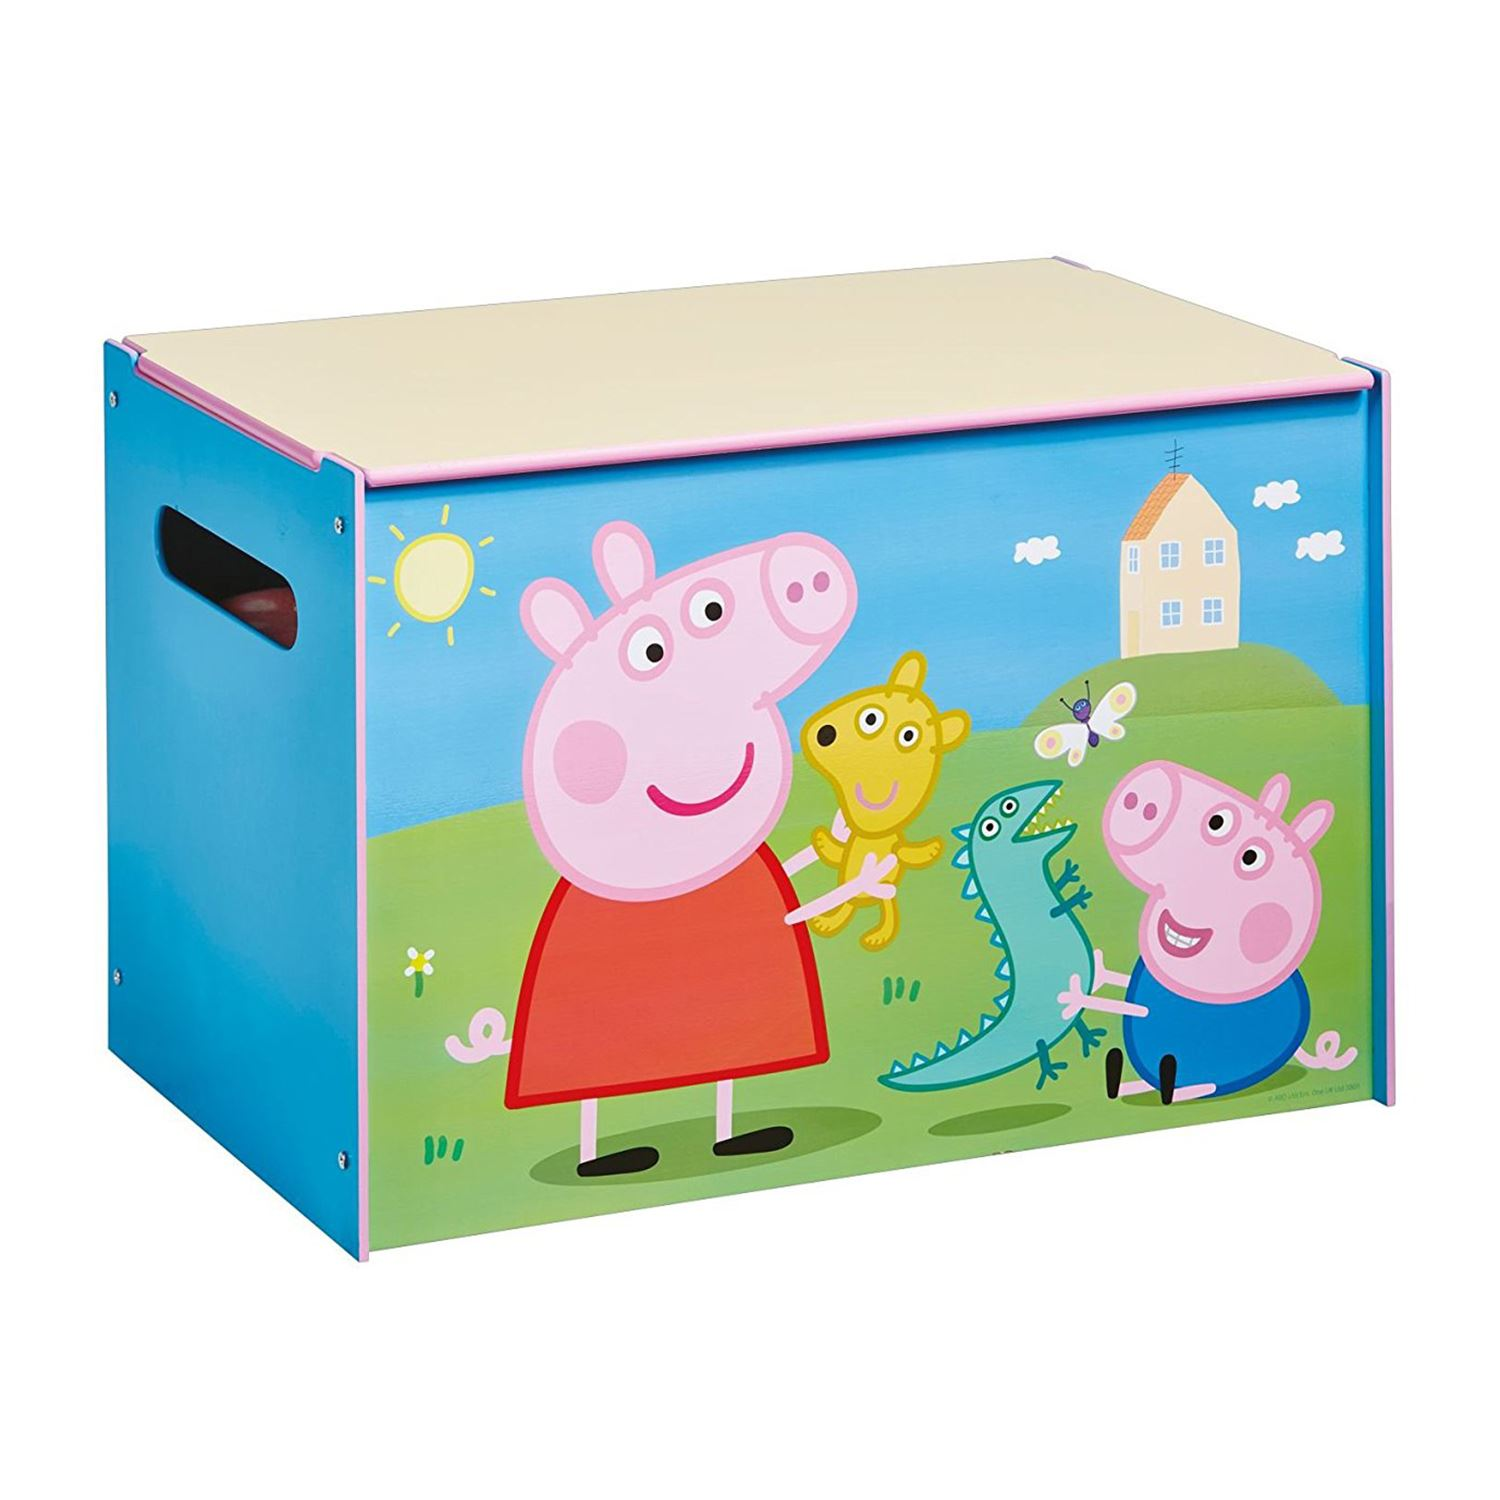 Minnie Mouse Bedroom 3 Drawer Storage Kids Wooden Box Pink: CHARACTER & DISNEY TOY BOX BEDROOM STORAGE